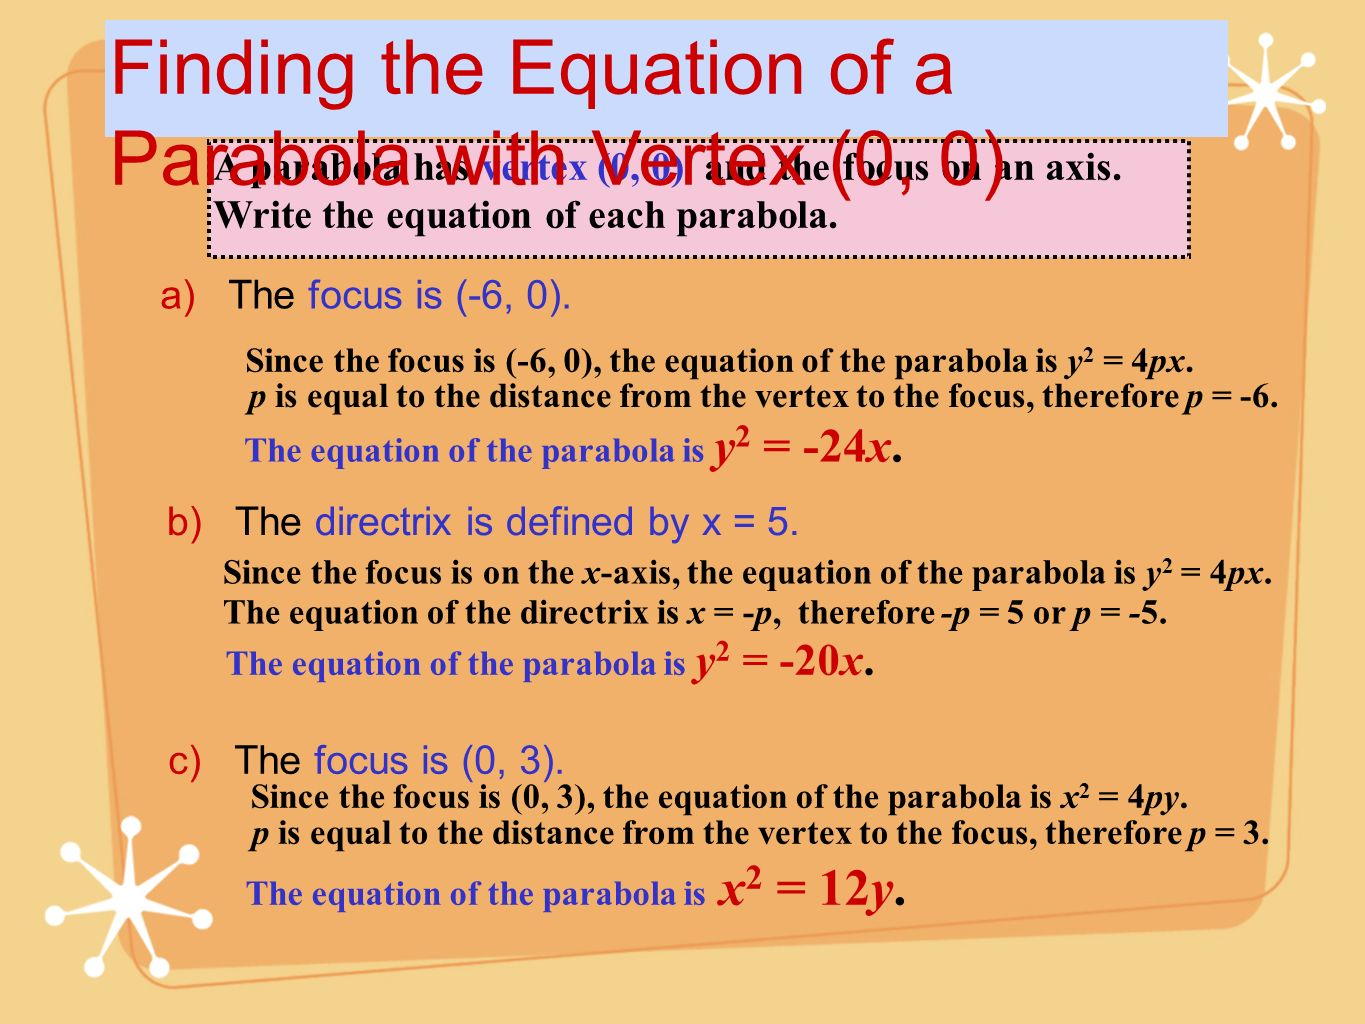 Finding the Equation of a Parabola with Vertex (0, 0)